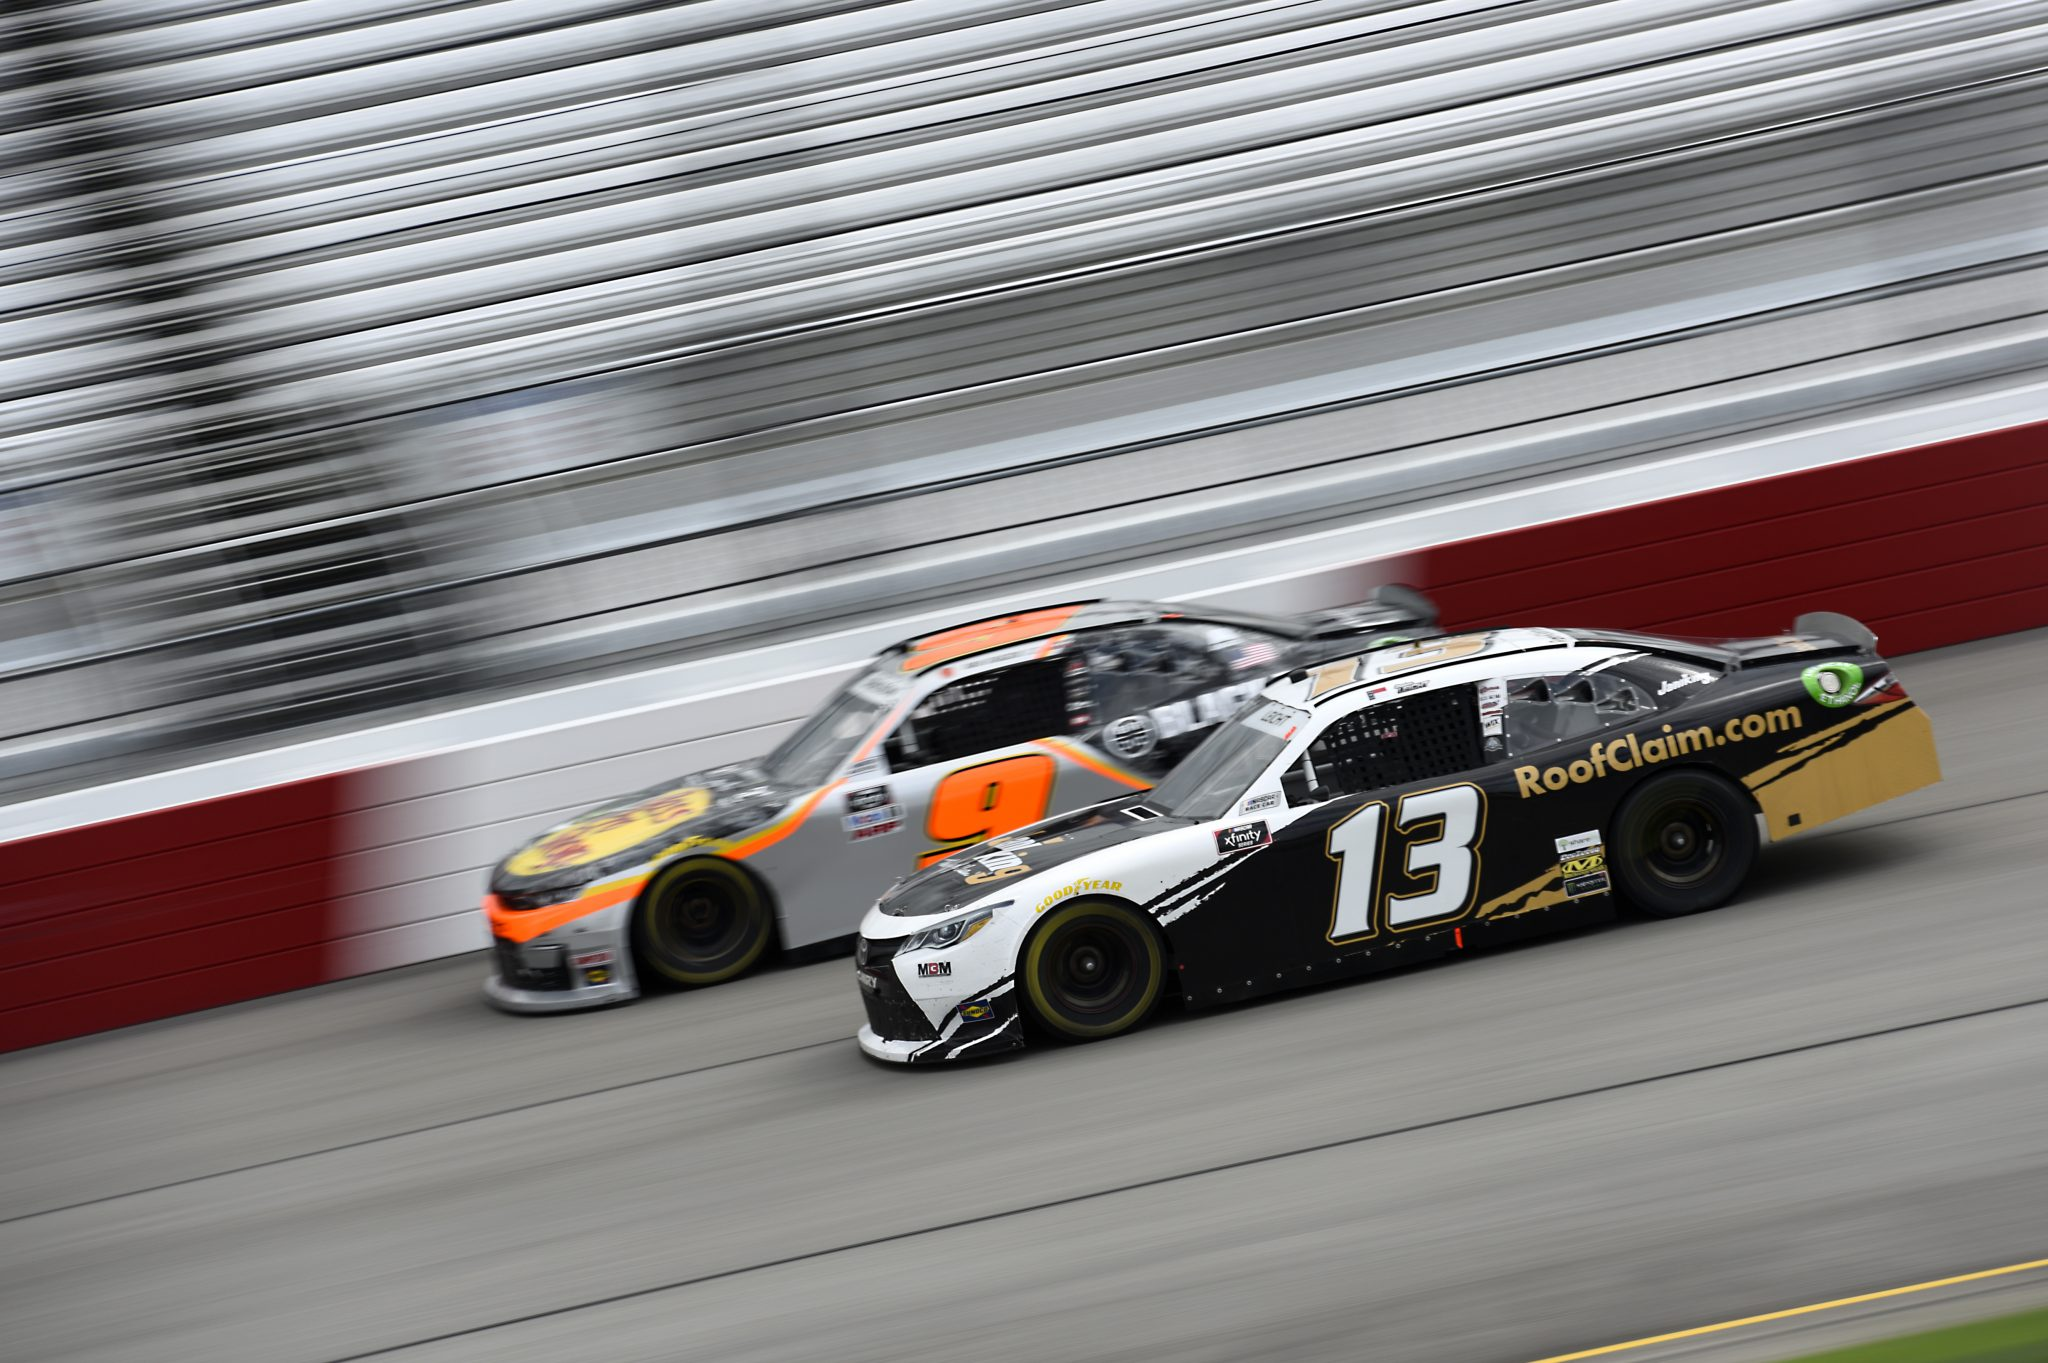 RICHMOND, VIRGINIA - SEPTEMBER 12: Stephen Leicht, driver of the #13 RoofClaim.com Toyota, and Noah Gragson, driver of the #9 Bass Pro Shops/TrueTimber Camo Chevrolet, race during the NASCAR Xfinity Series Virginia is for Racing Lovers 250 at Richmond Raceway on September 12, 2020 in Richmond, Virginia. (Photo by Jared C. Tilton/Getty Images) | Getty Images